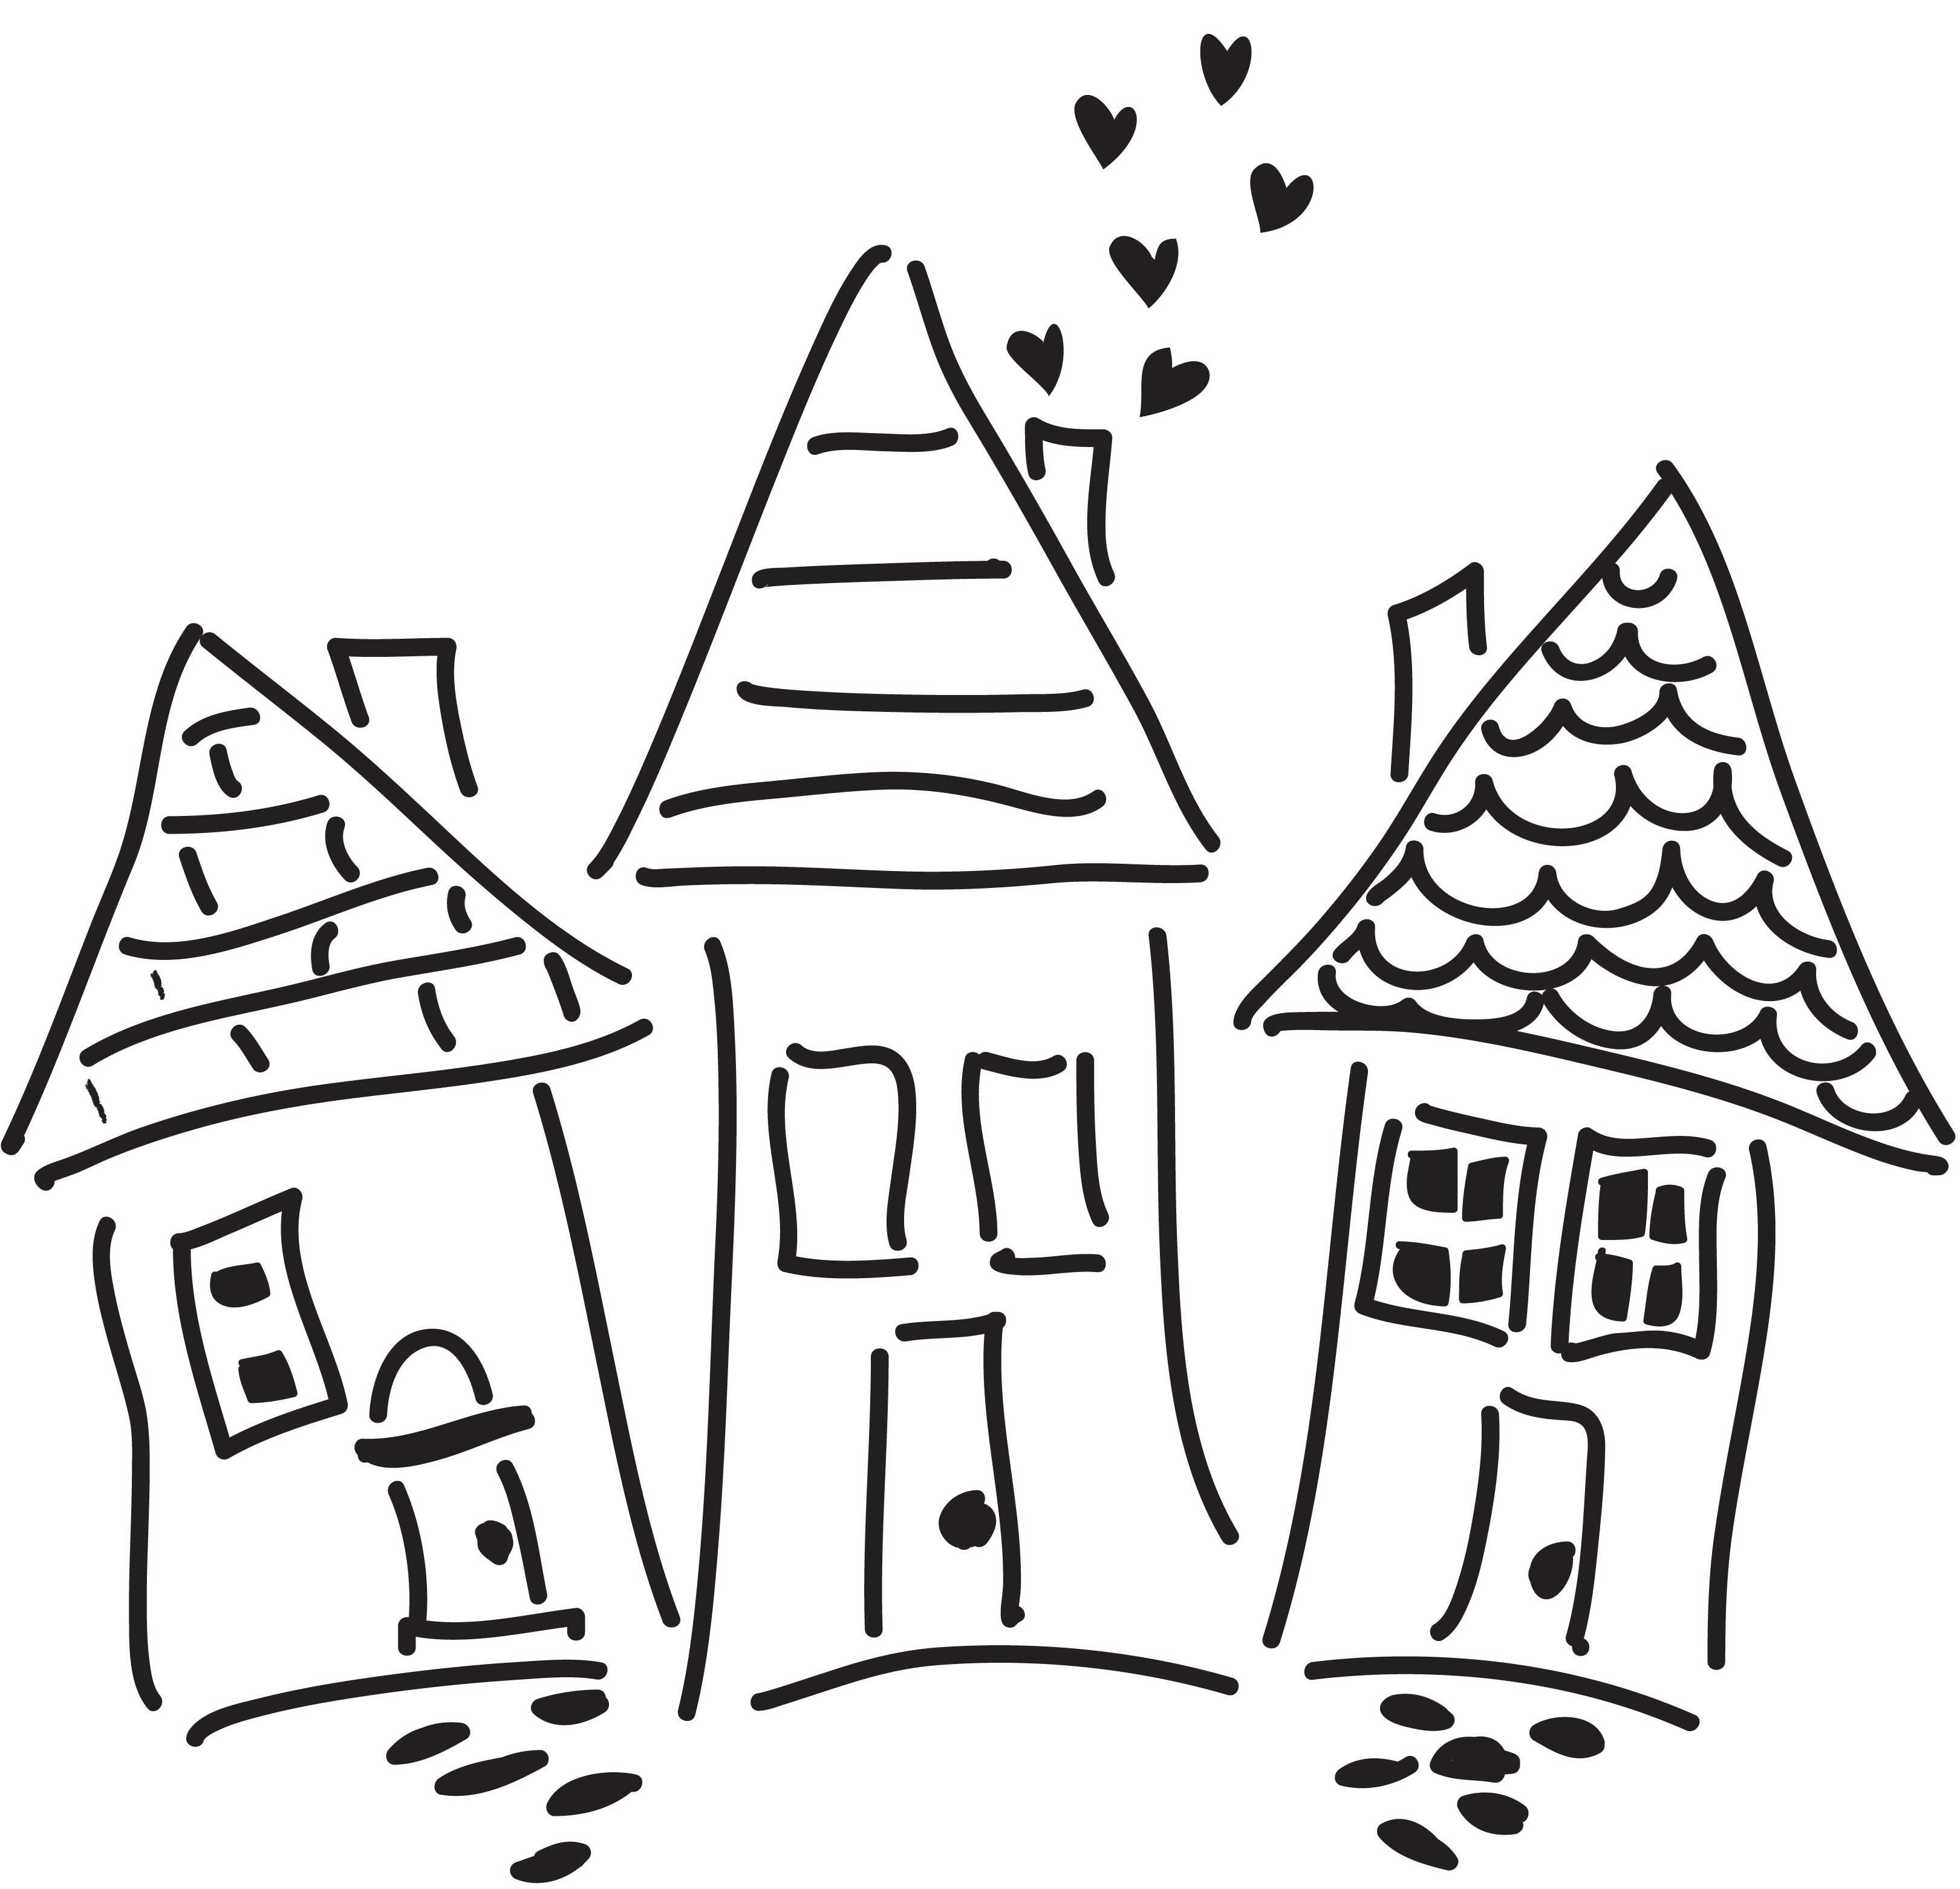 Whimsical Houses | Marks, Scribbles, and Doodles | Pinterest ...